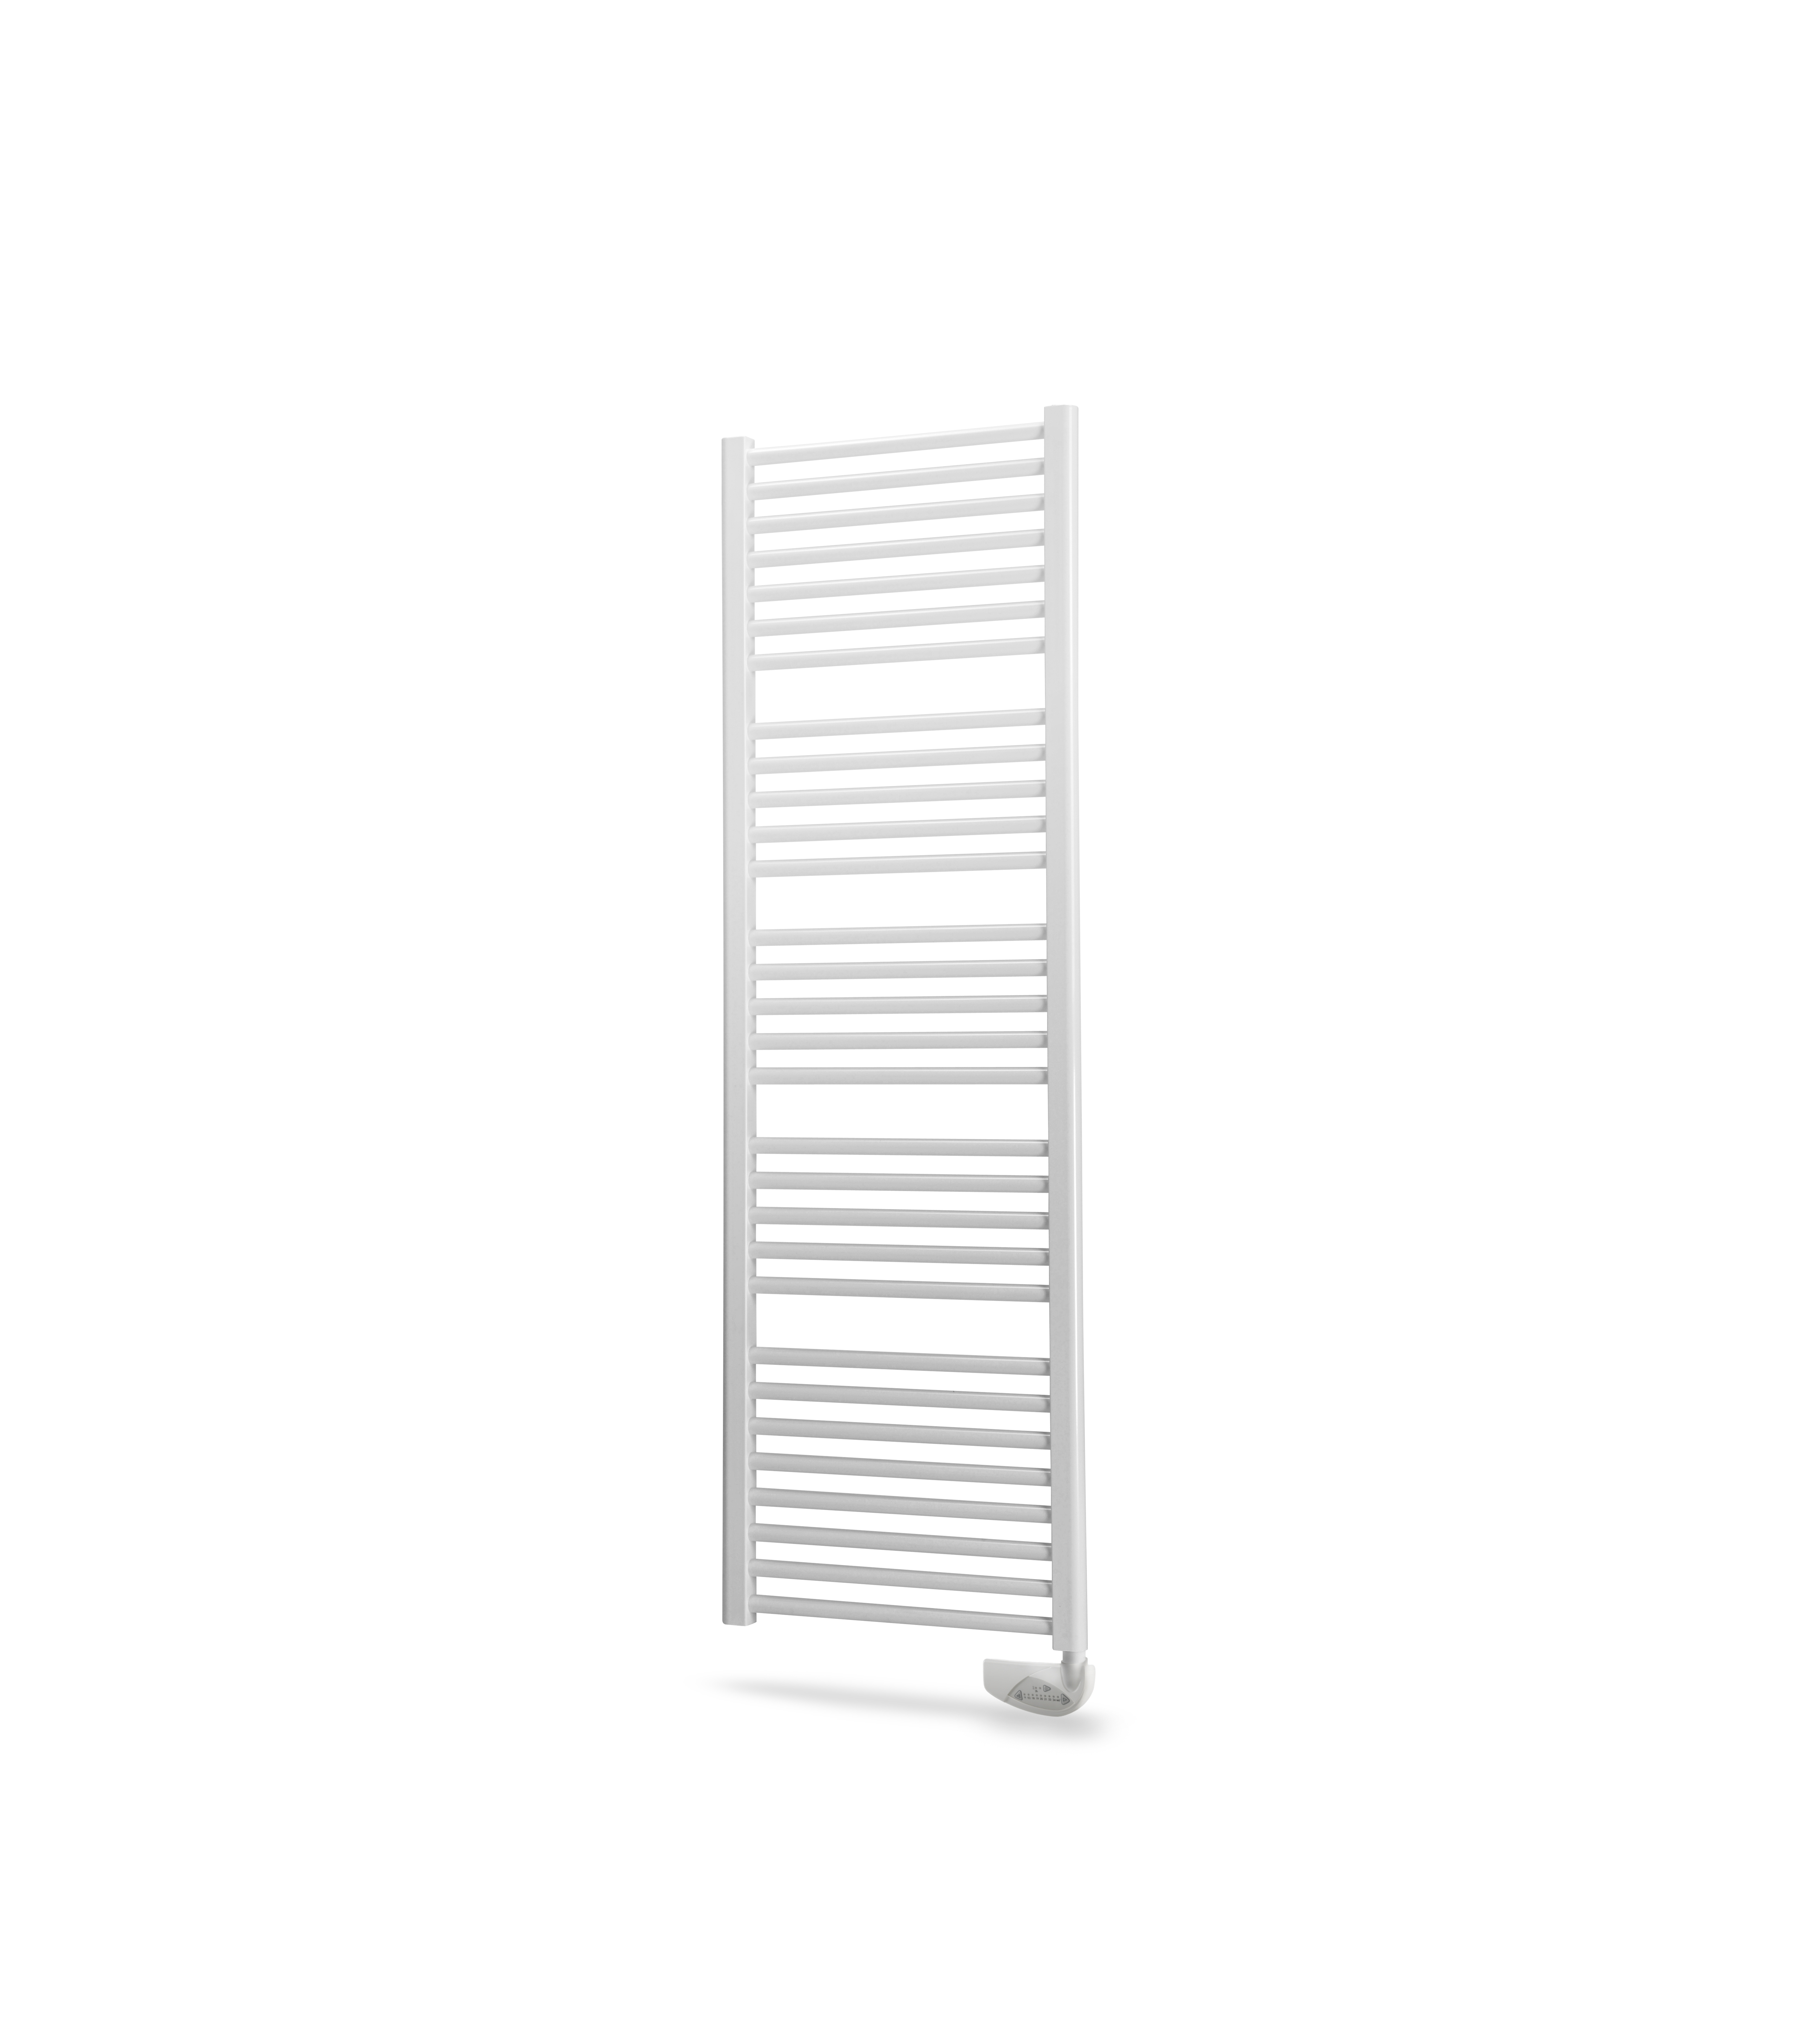 SAN Alaid Towel Warmer